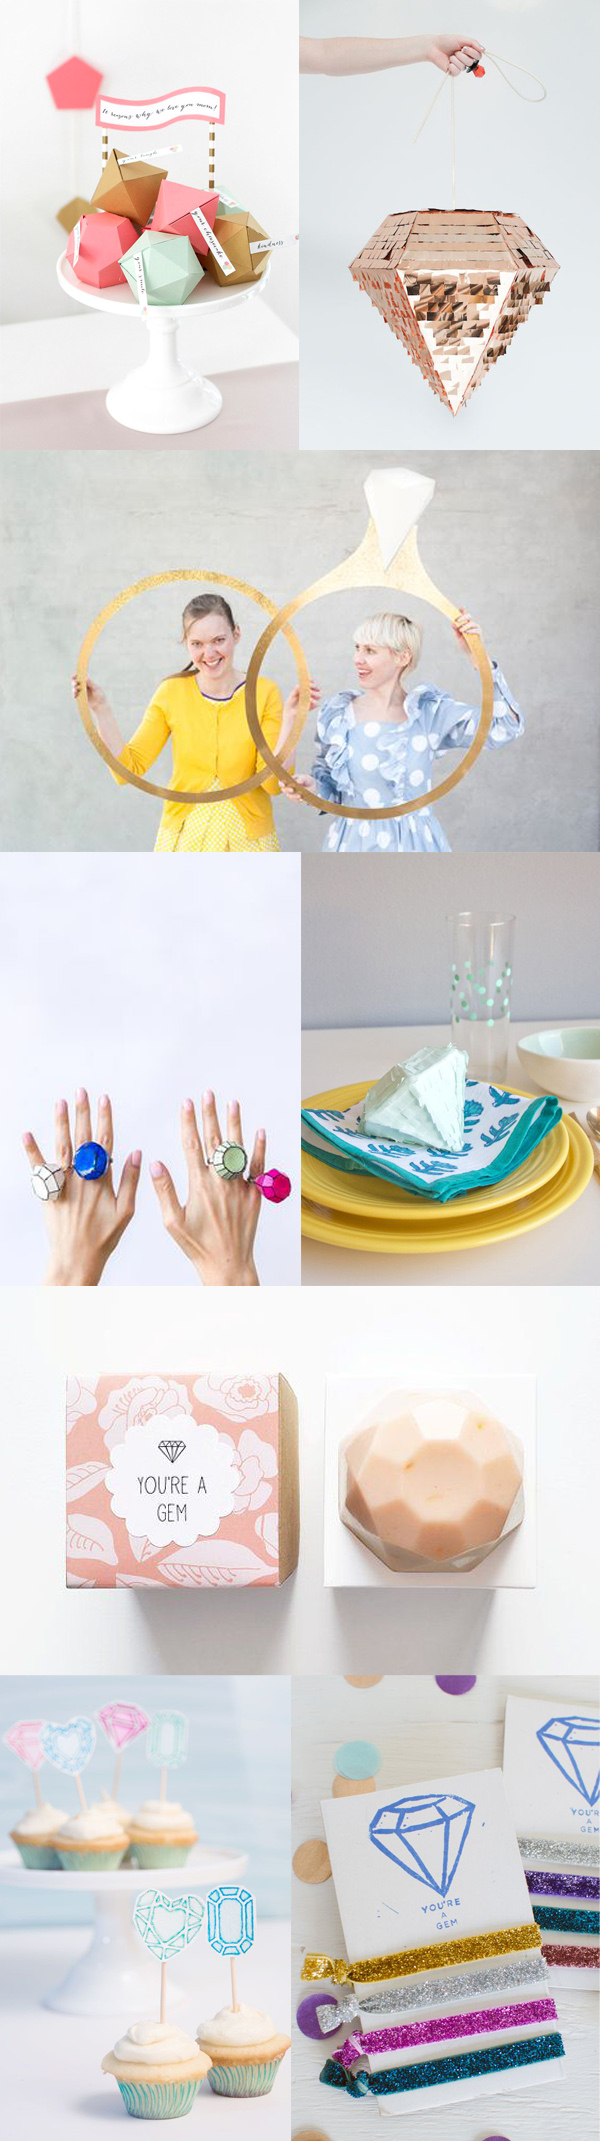 You're A Gem Party Inspiration Board